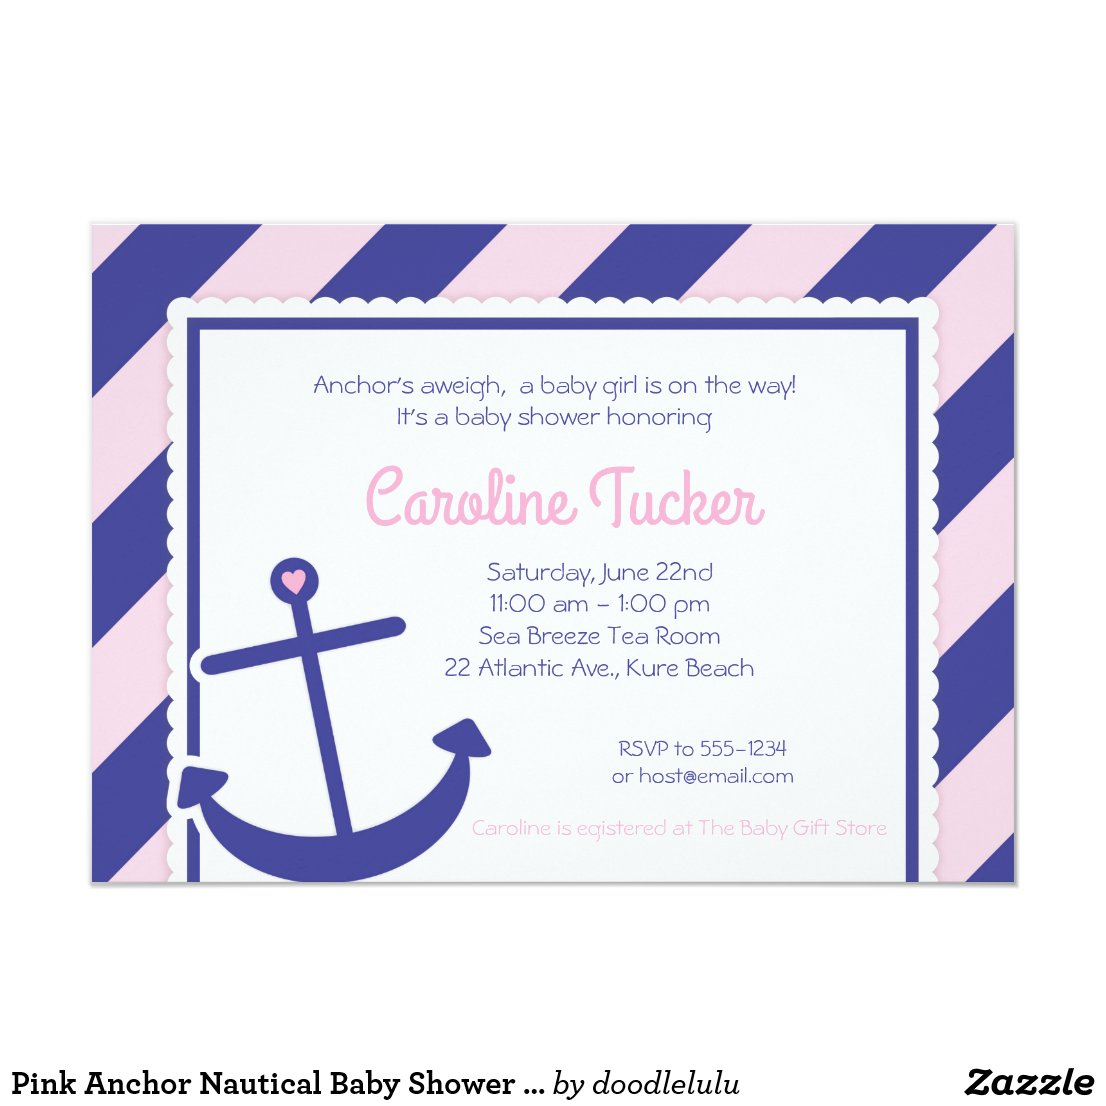 Pink Anchor Nautical Baby Shower Invitation